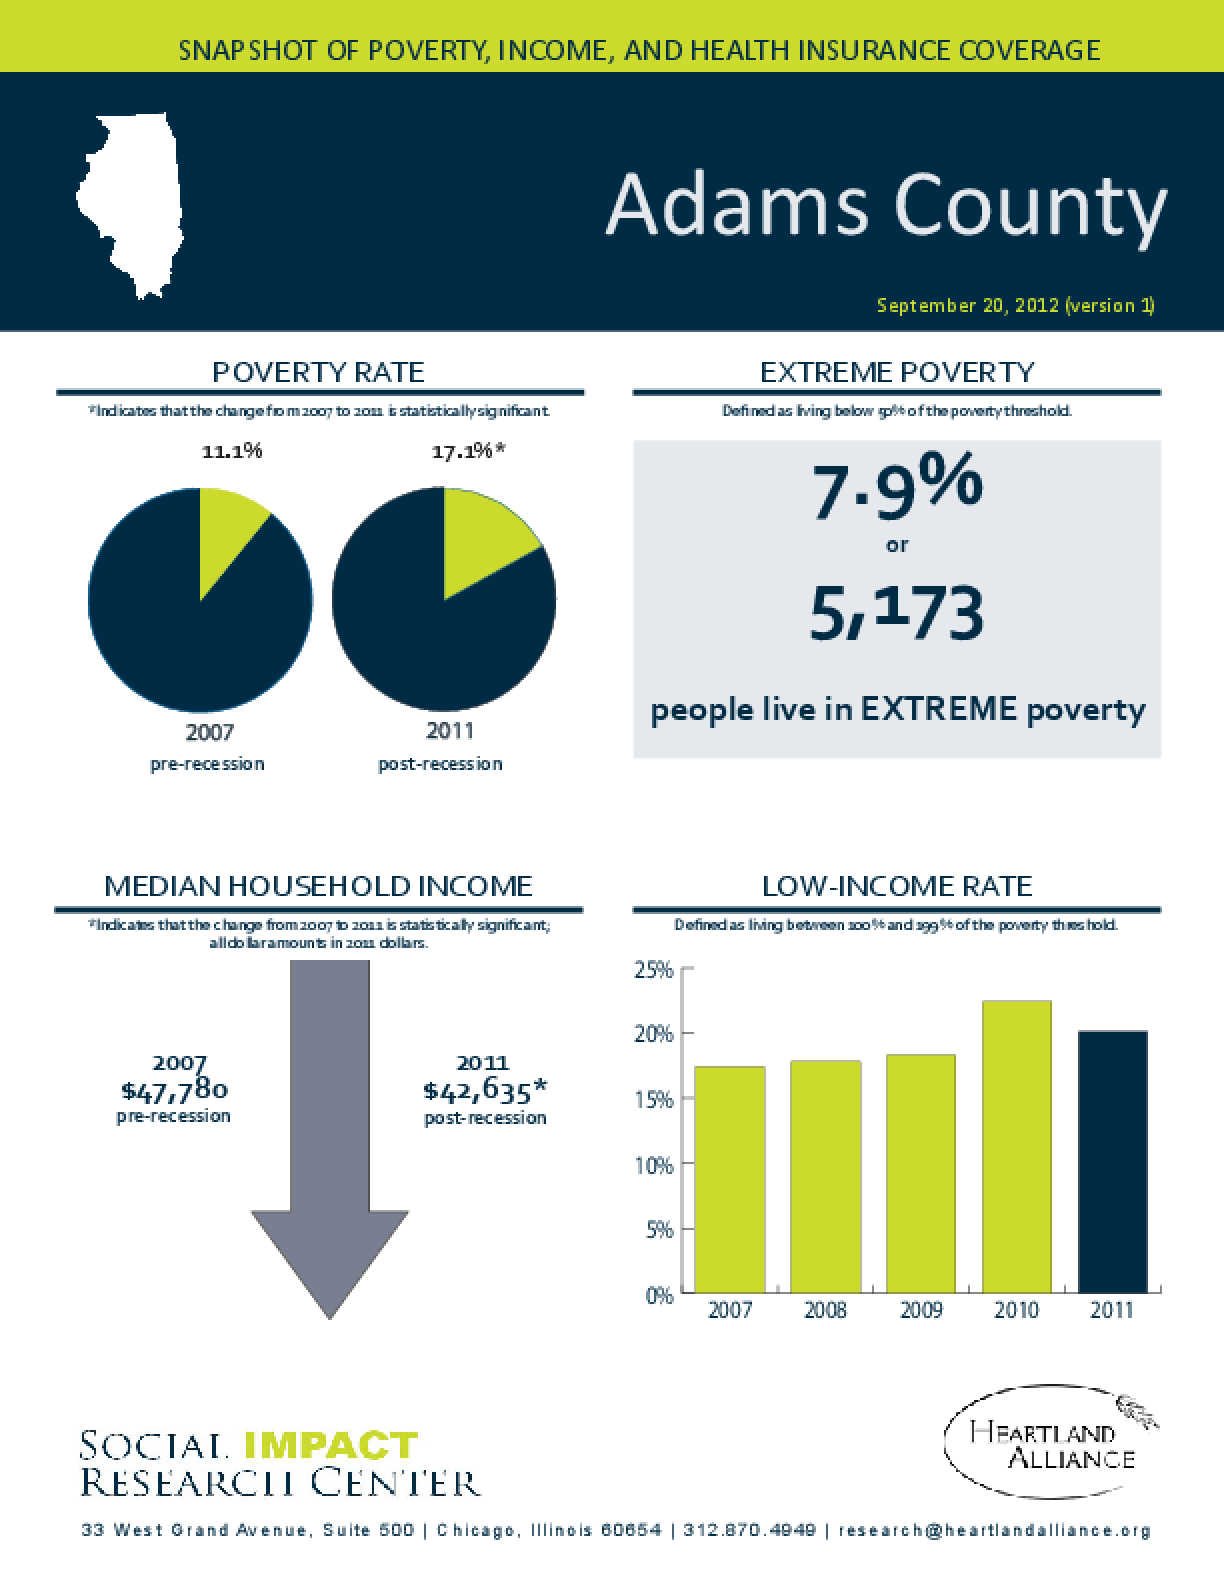 Adams County: Snapshot of Poverty, Income, and Health Insurance Coverage - 2011